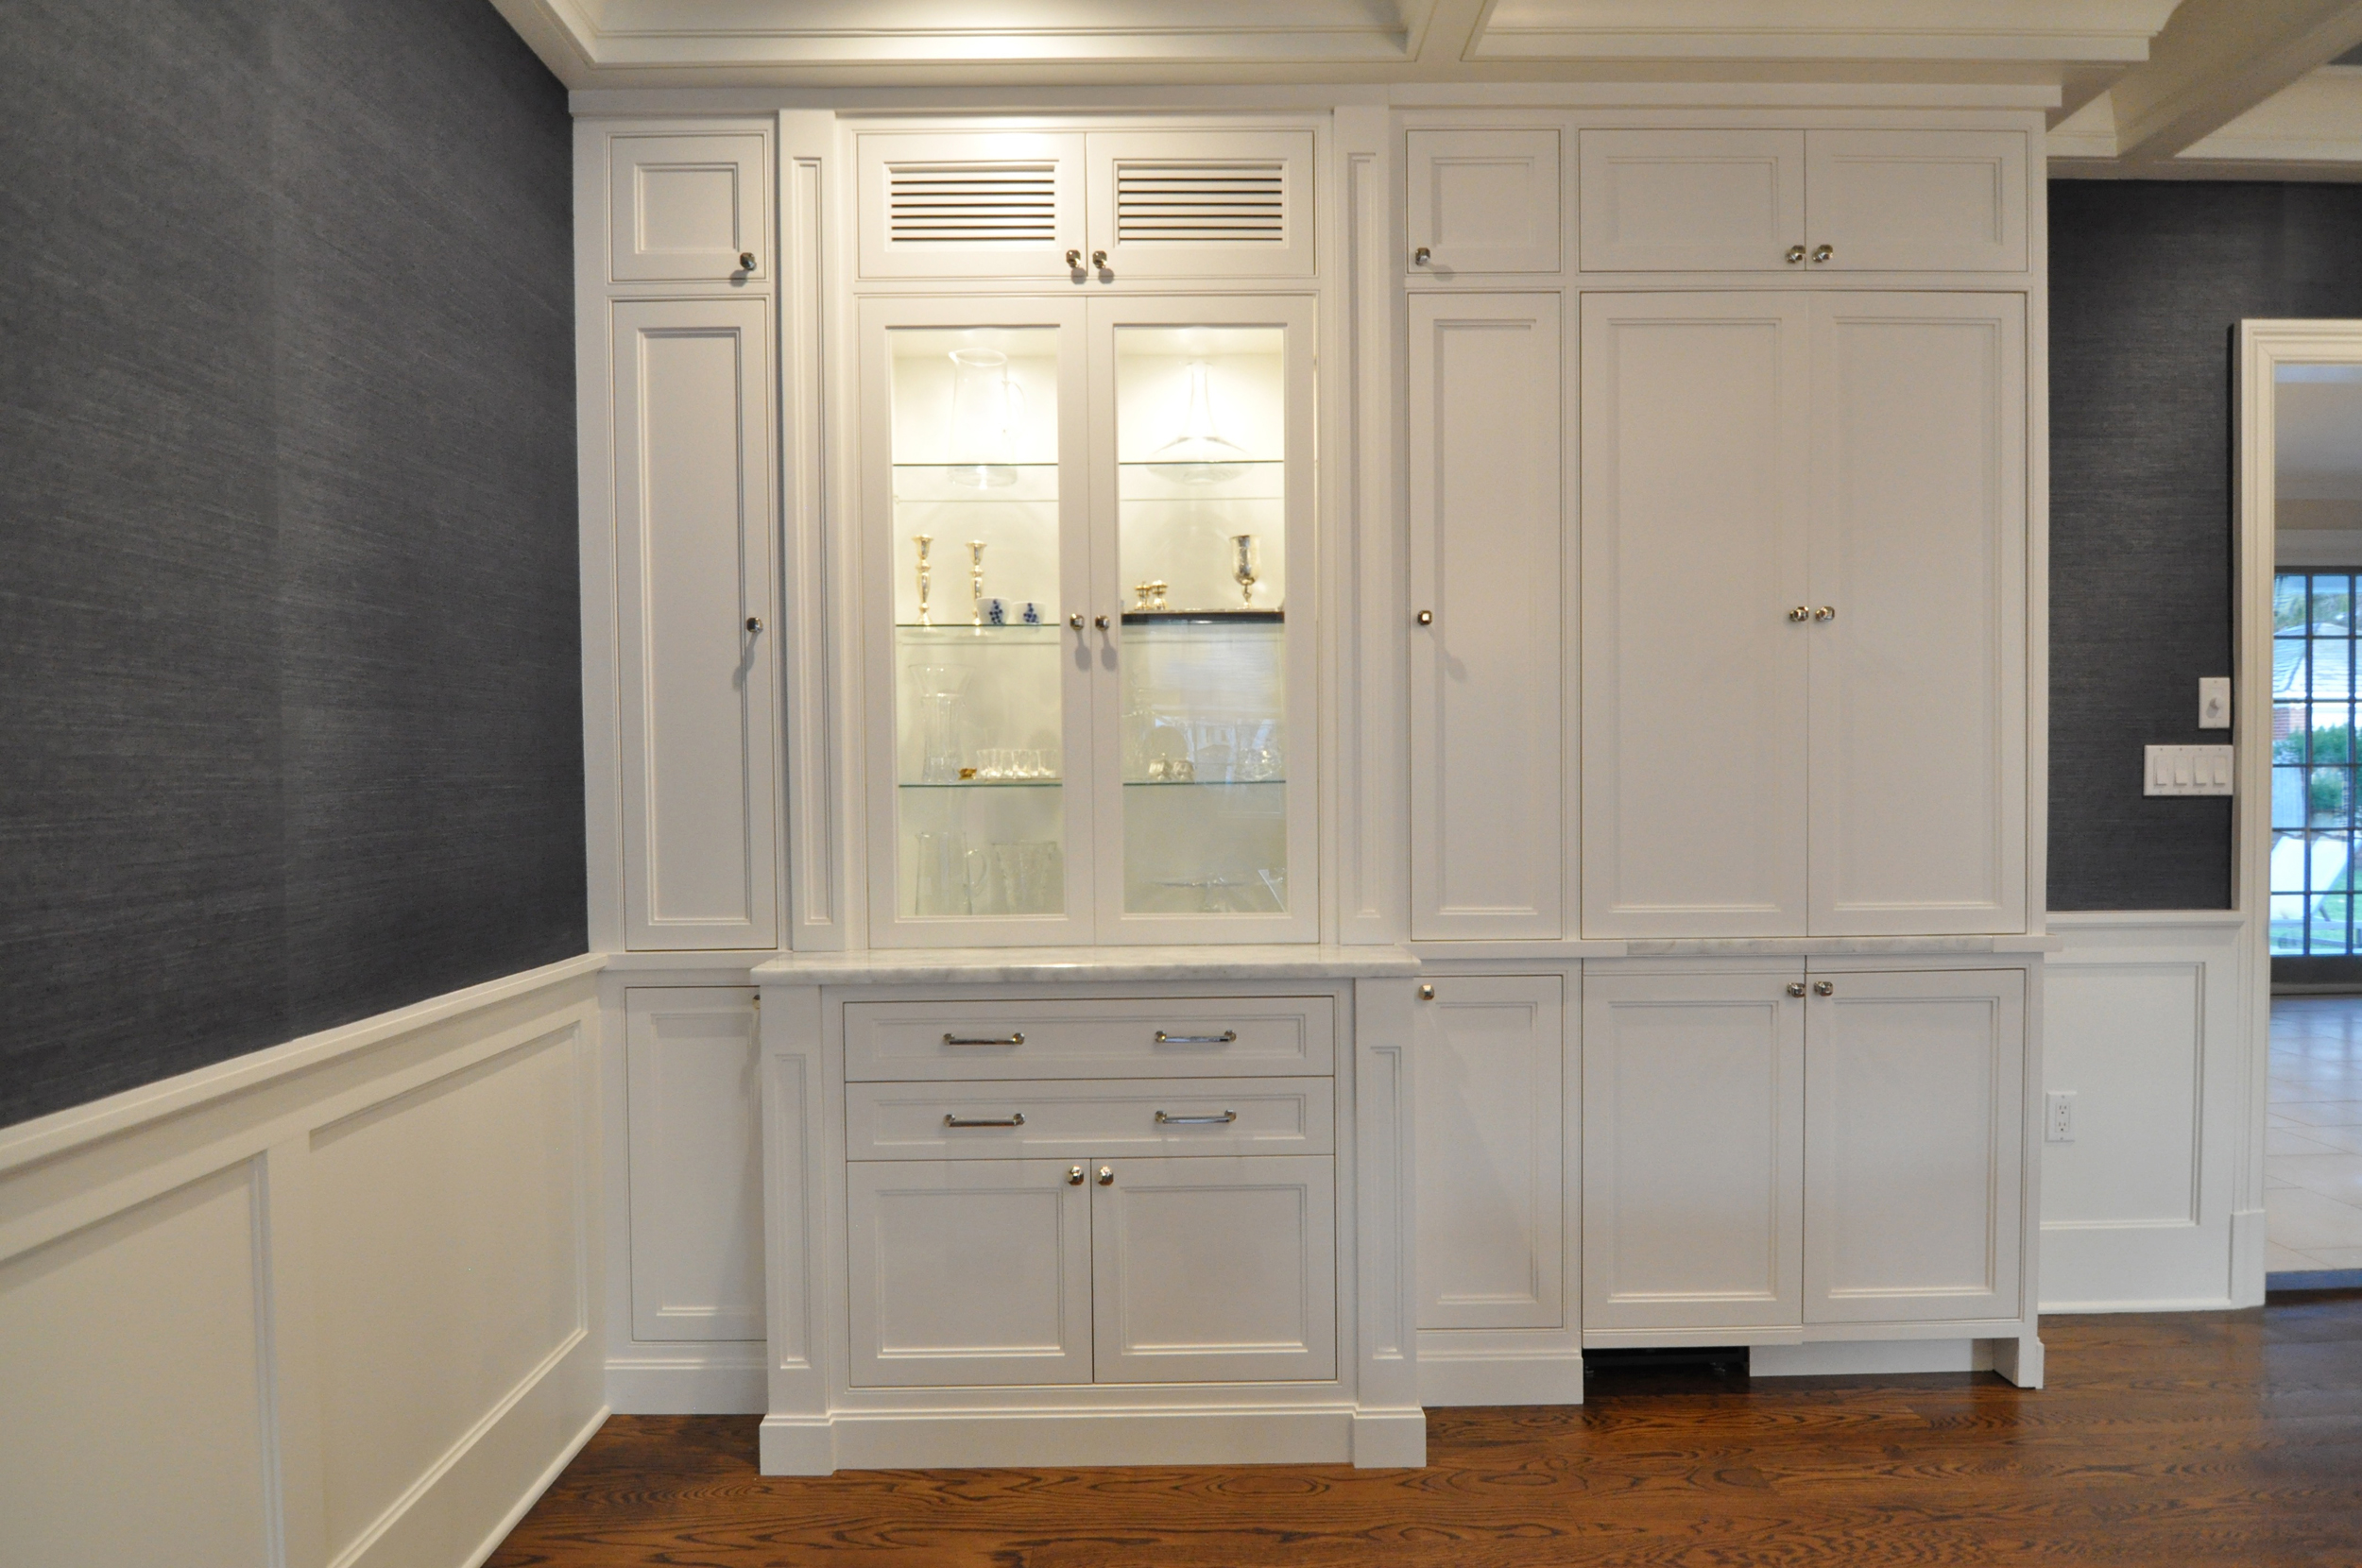 Dining KAM DESIGN_Dining Room Millwork_White Custom Cabinet_Wet Bar Closed_Wainscot - 1.jpg